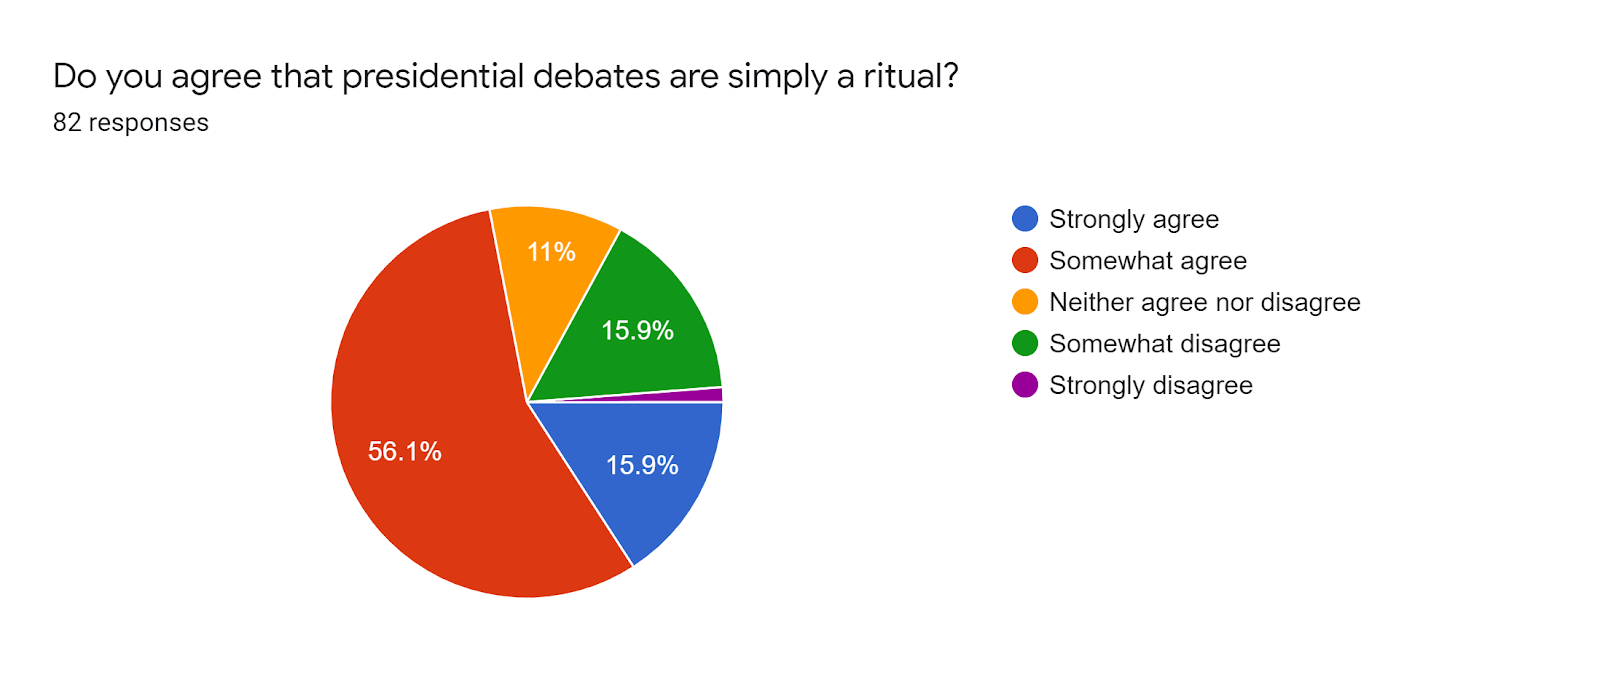 Forms response chart. Question title: Do you agree that presidential debates are simply a ritual?. Number of responses: 82 responses.